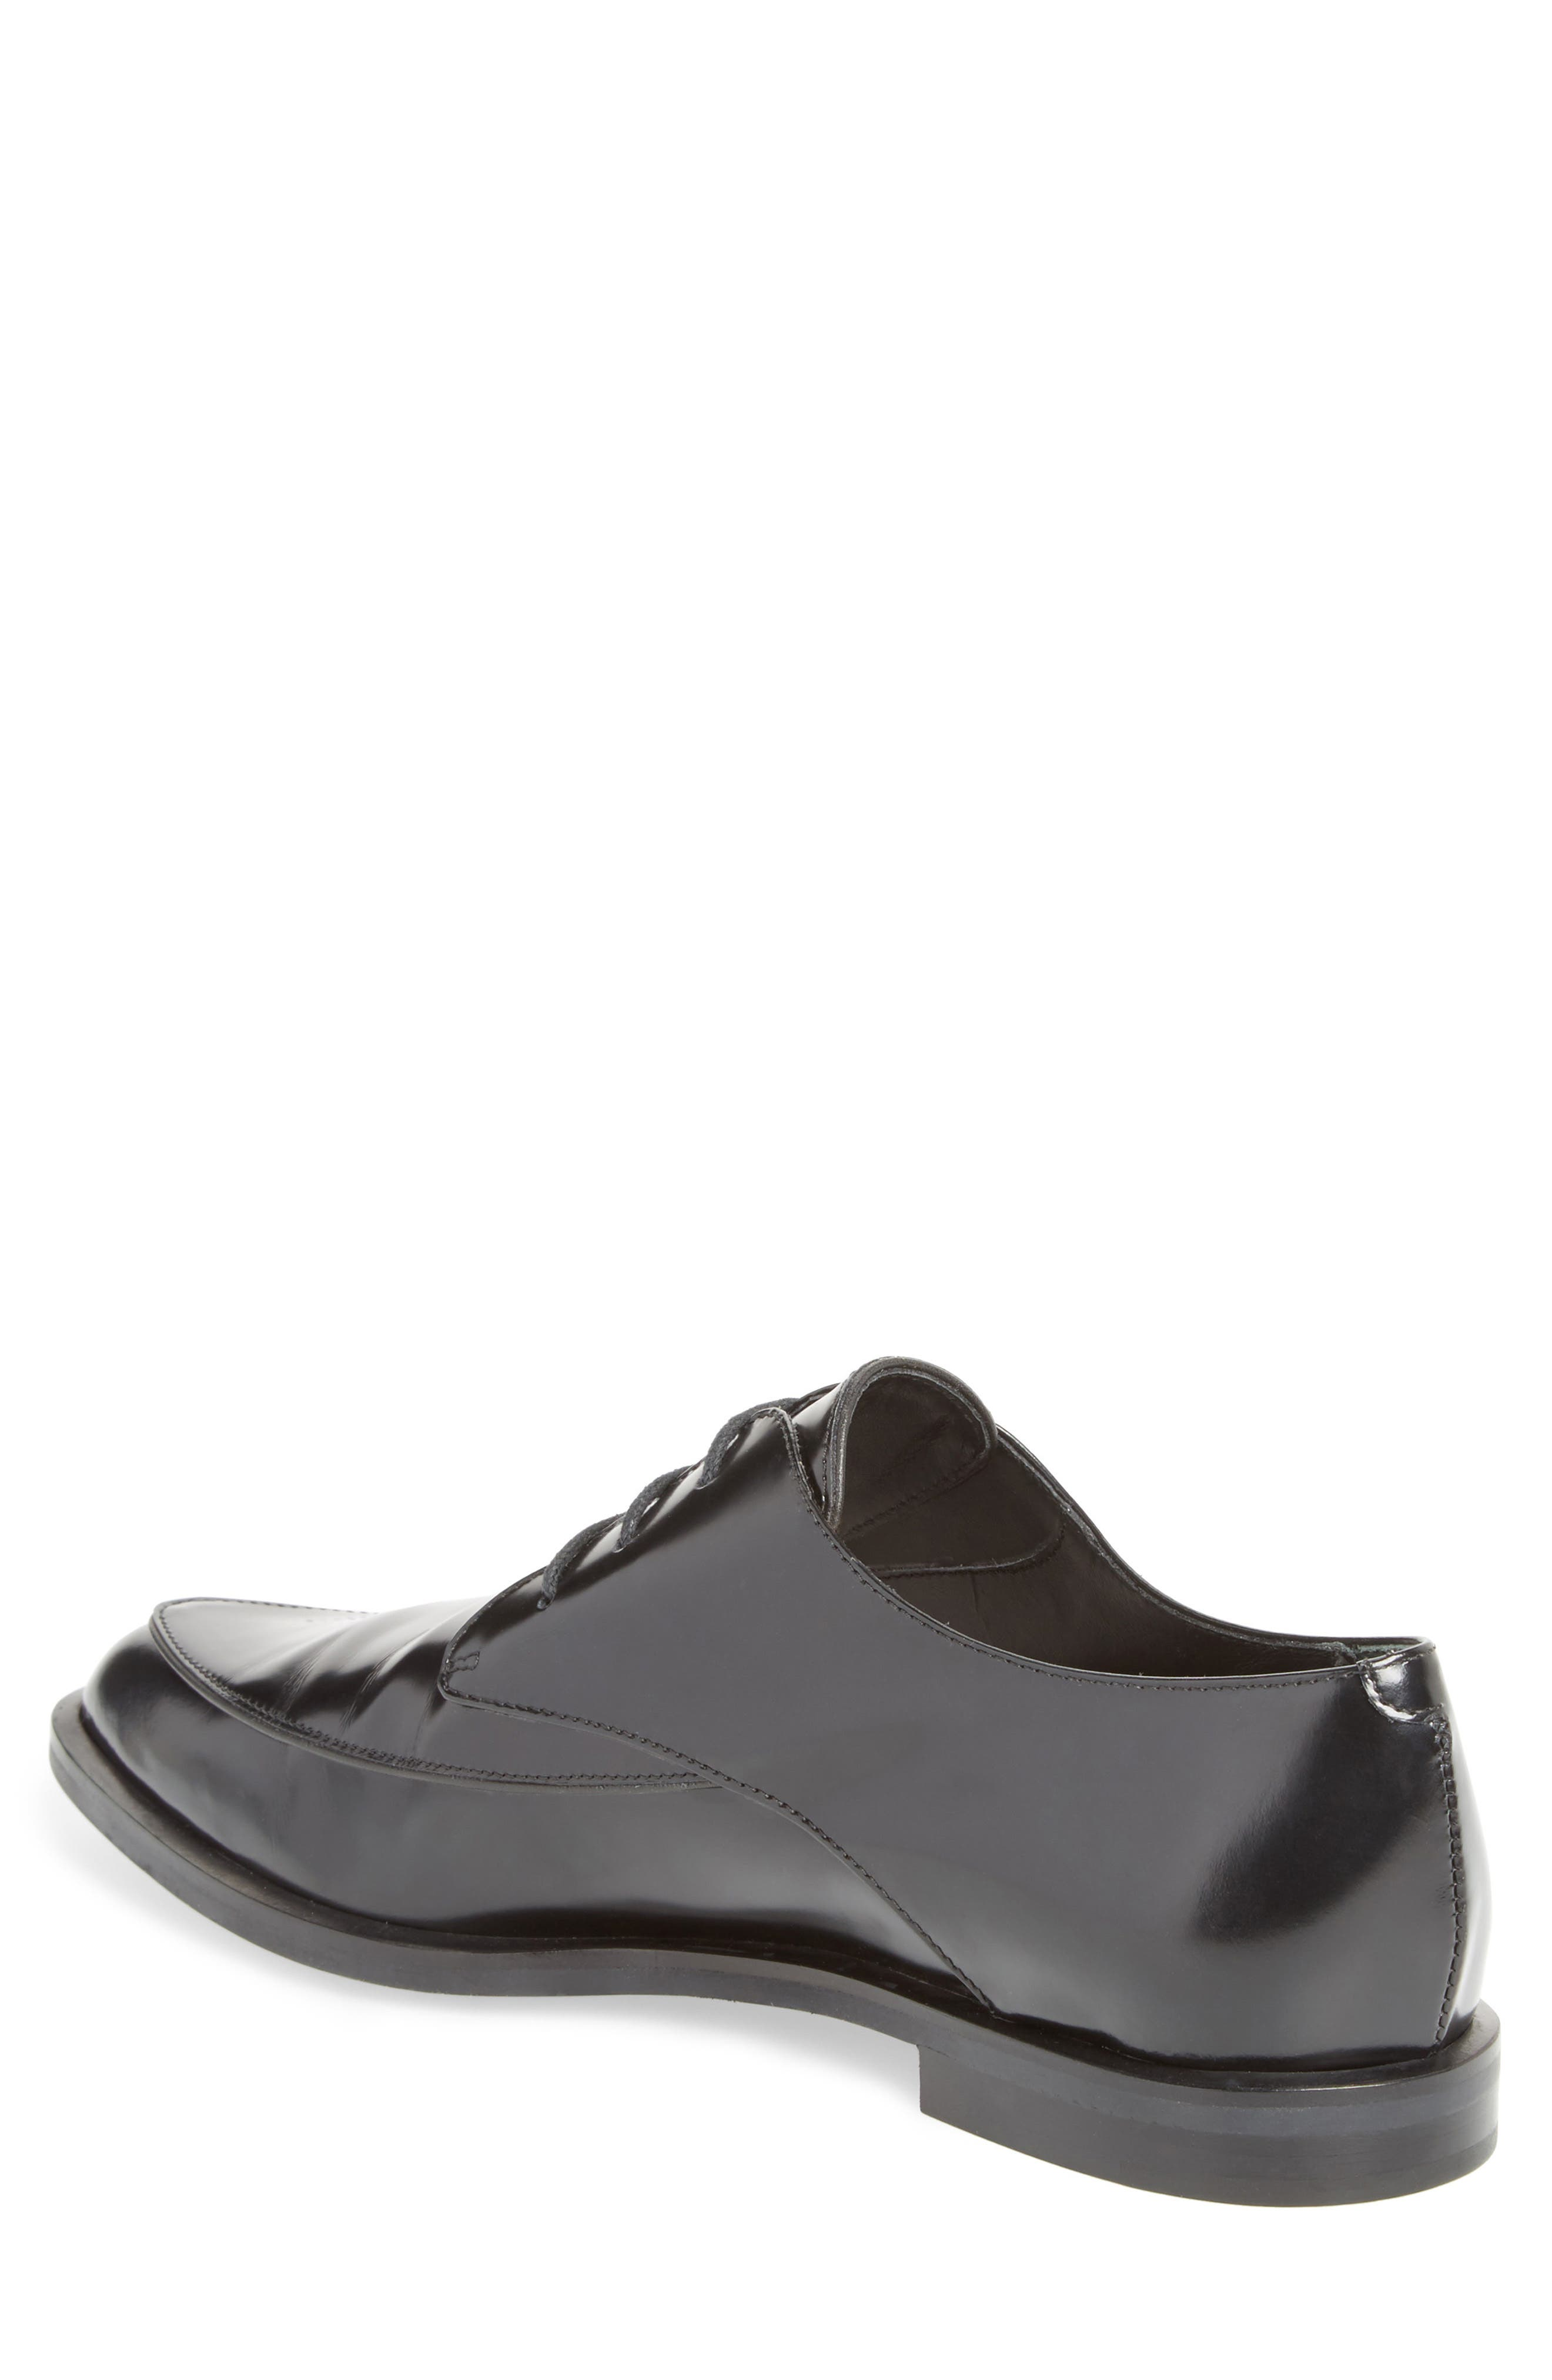 Alternate Image 2  - Tod's Pointy Toe Oxford (Women)